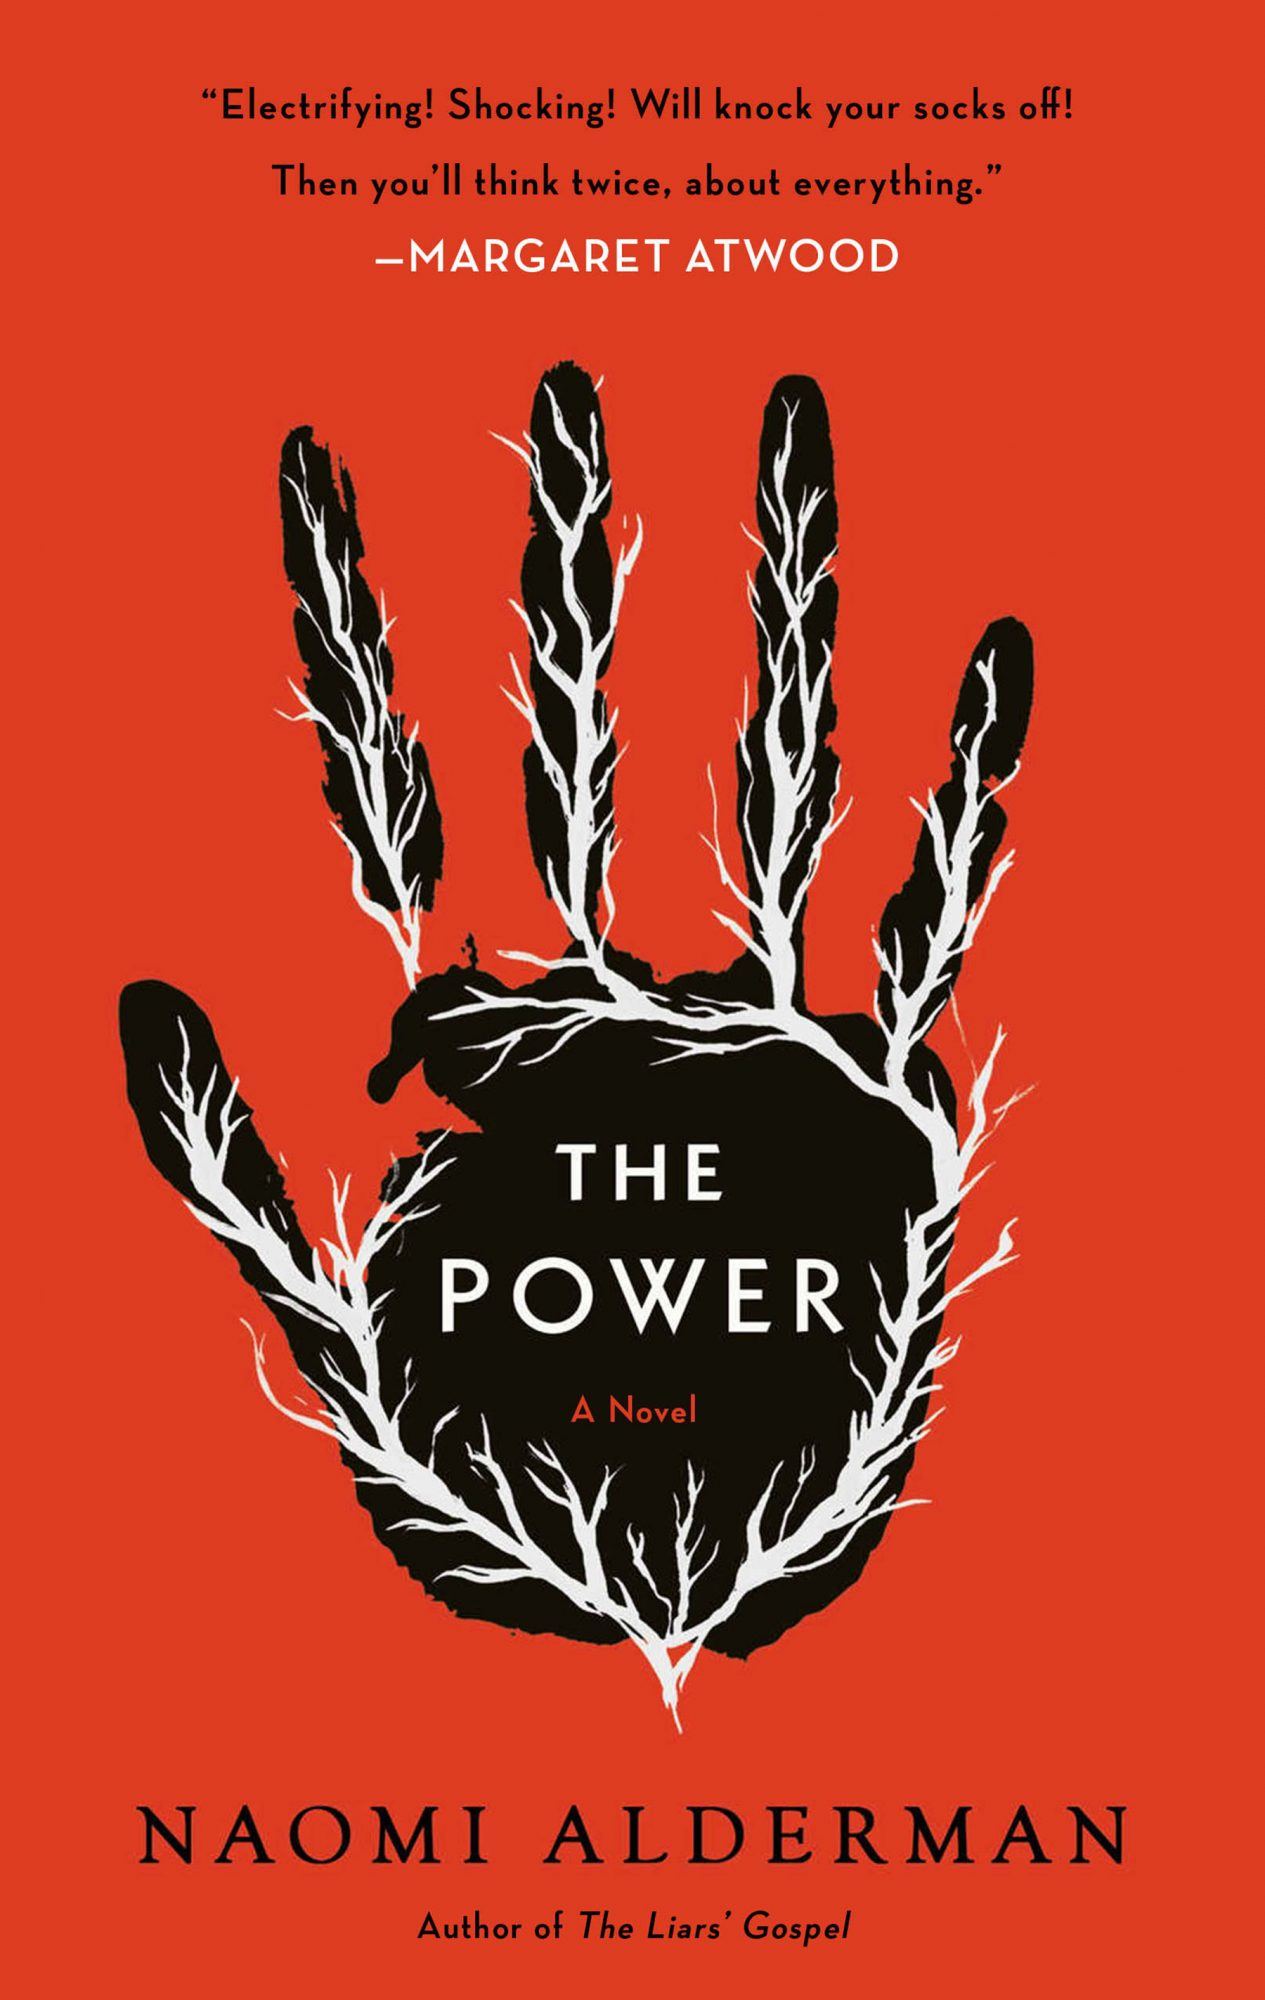 The Powerby Naomi Alderman